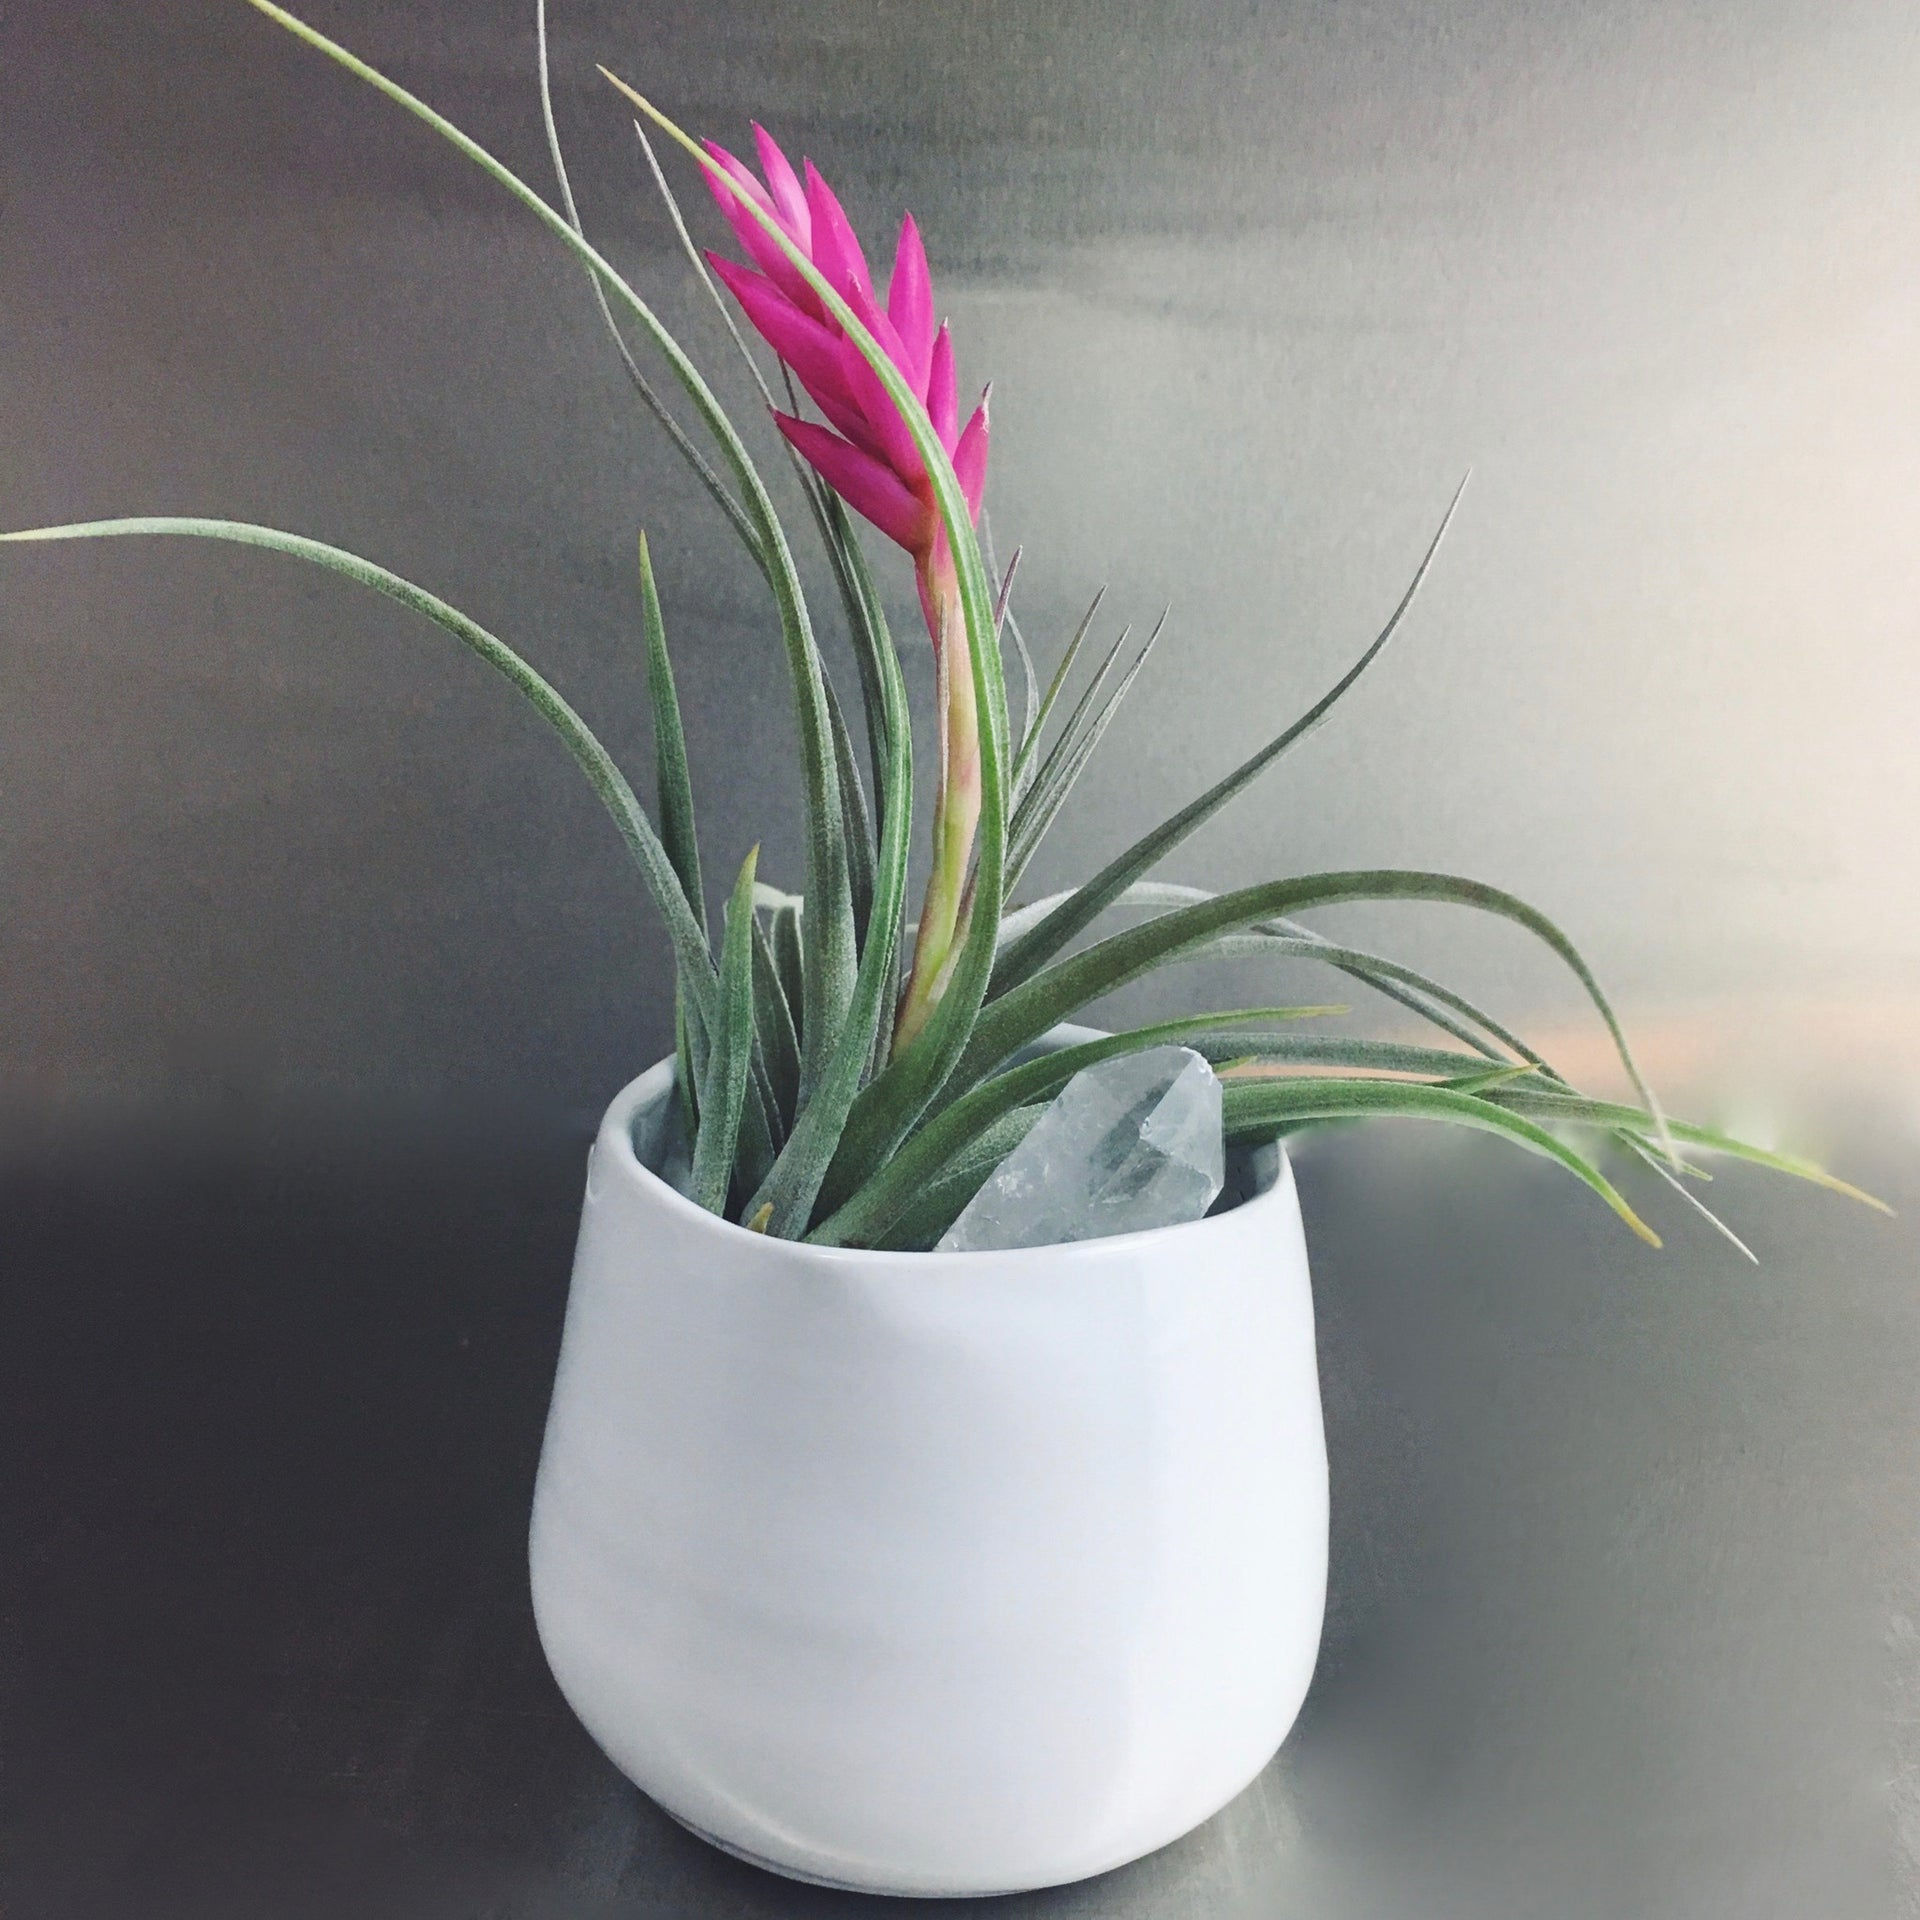 Small air plant in ceramic pot accented by a clear quartz crystal